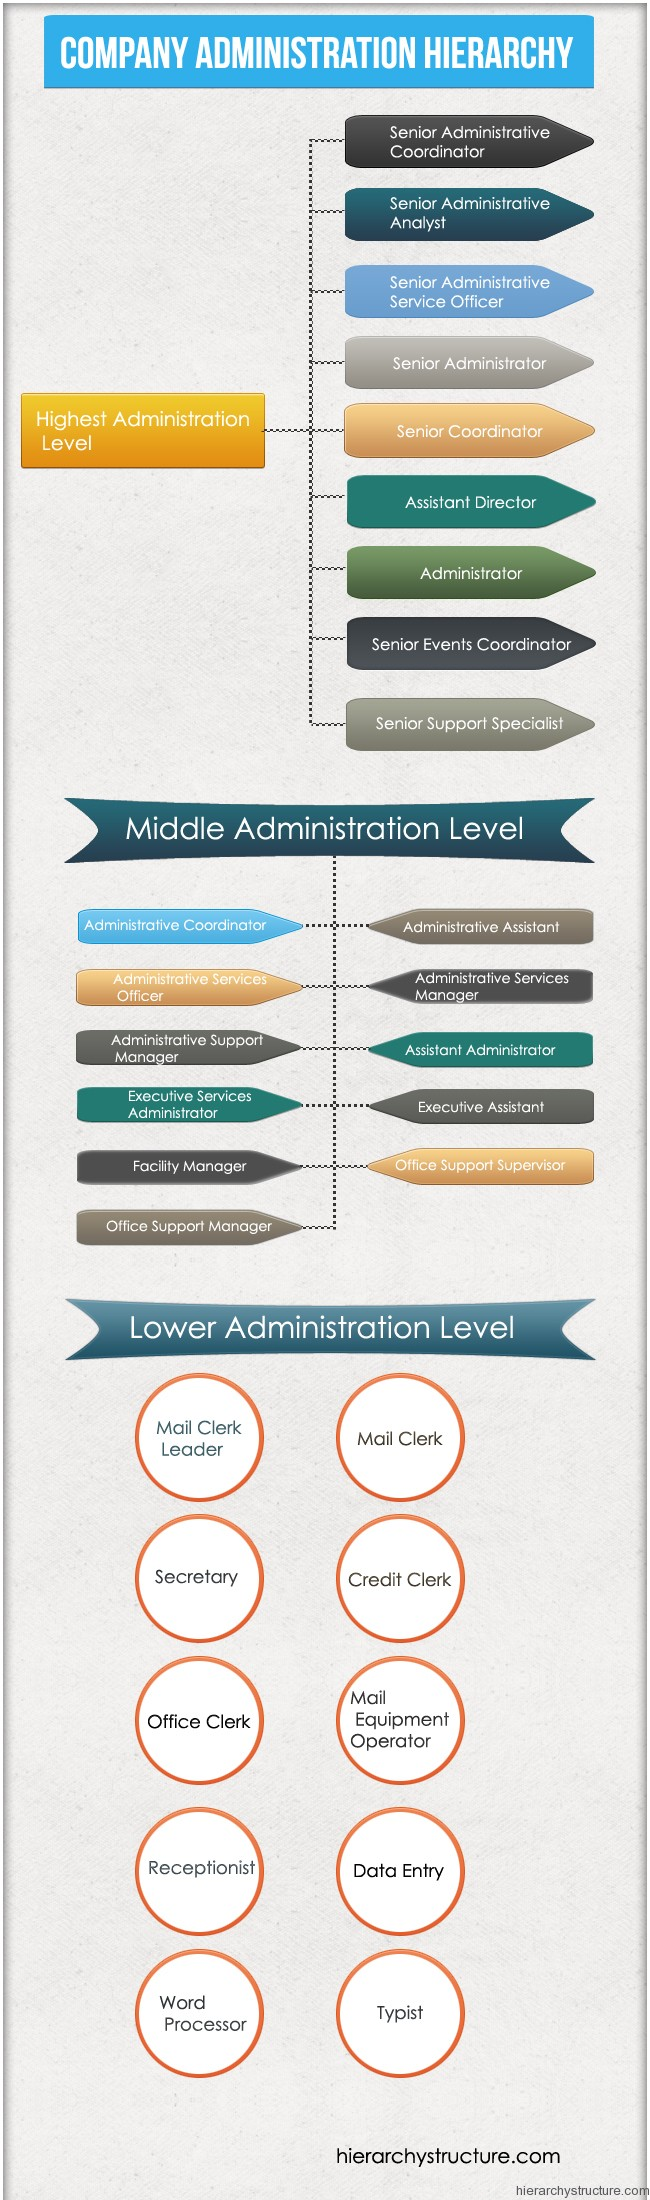 Company Administration Hierarchy